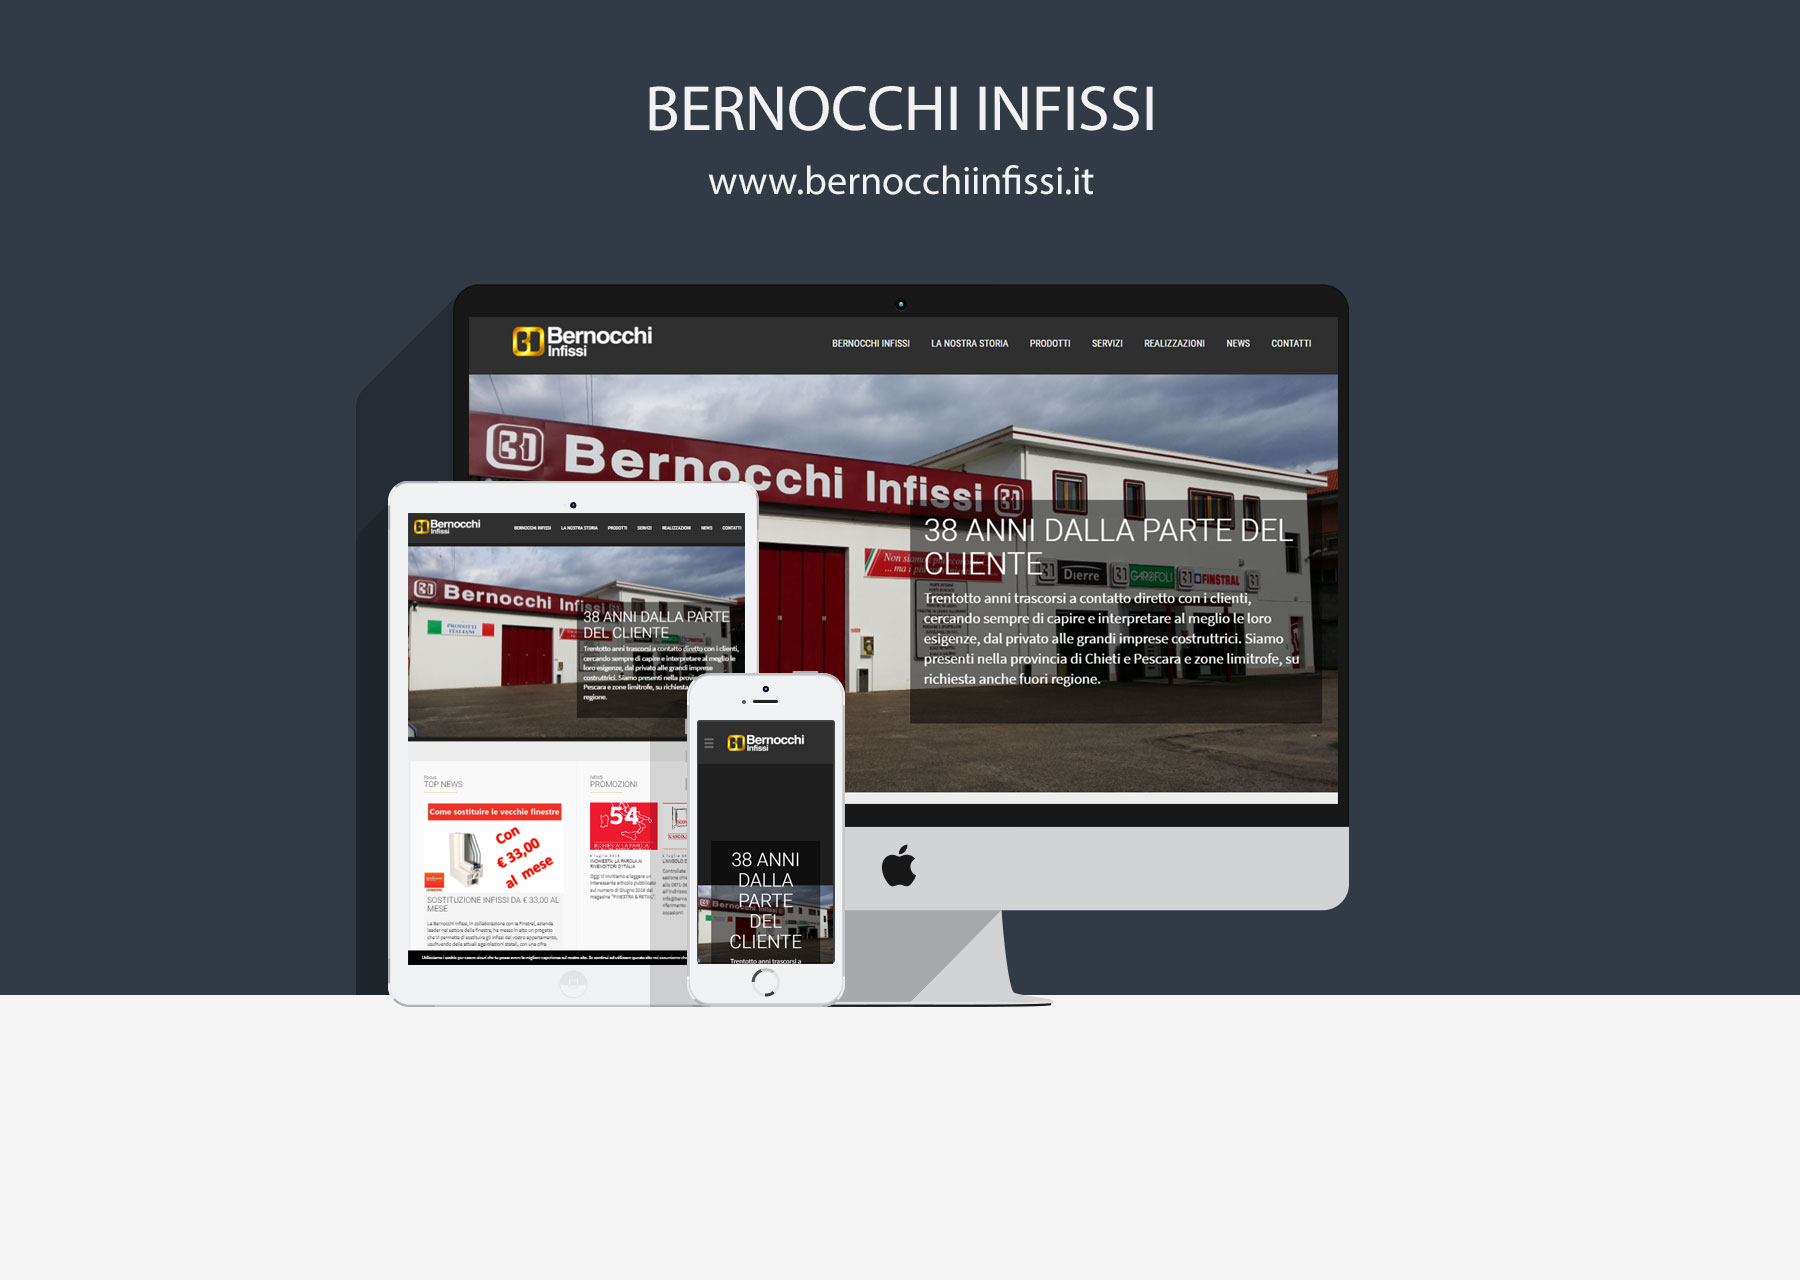 preview-idevices-bernocchiinfissi